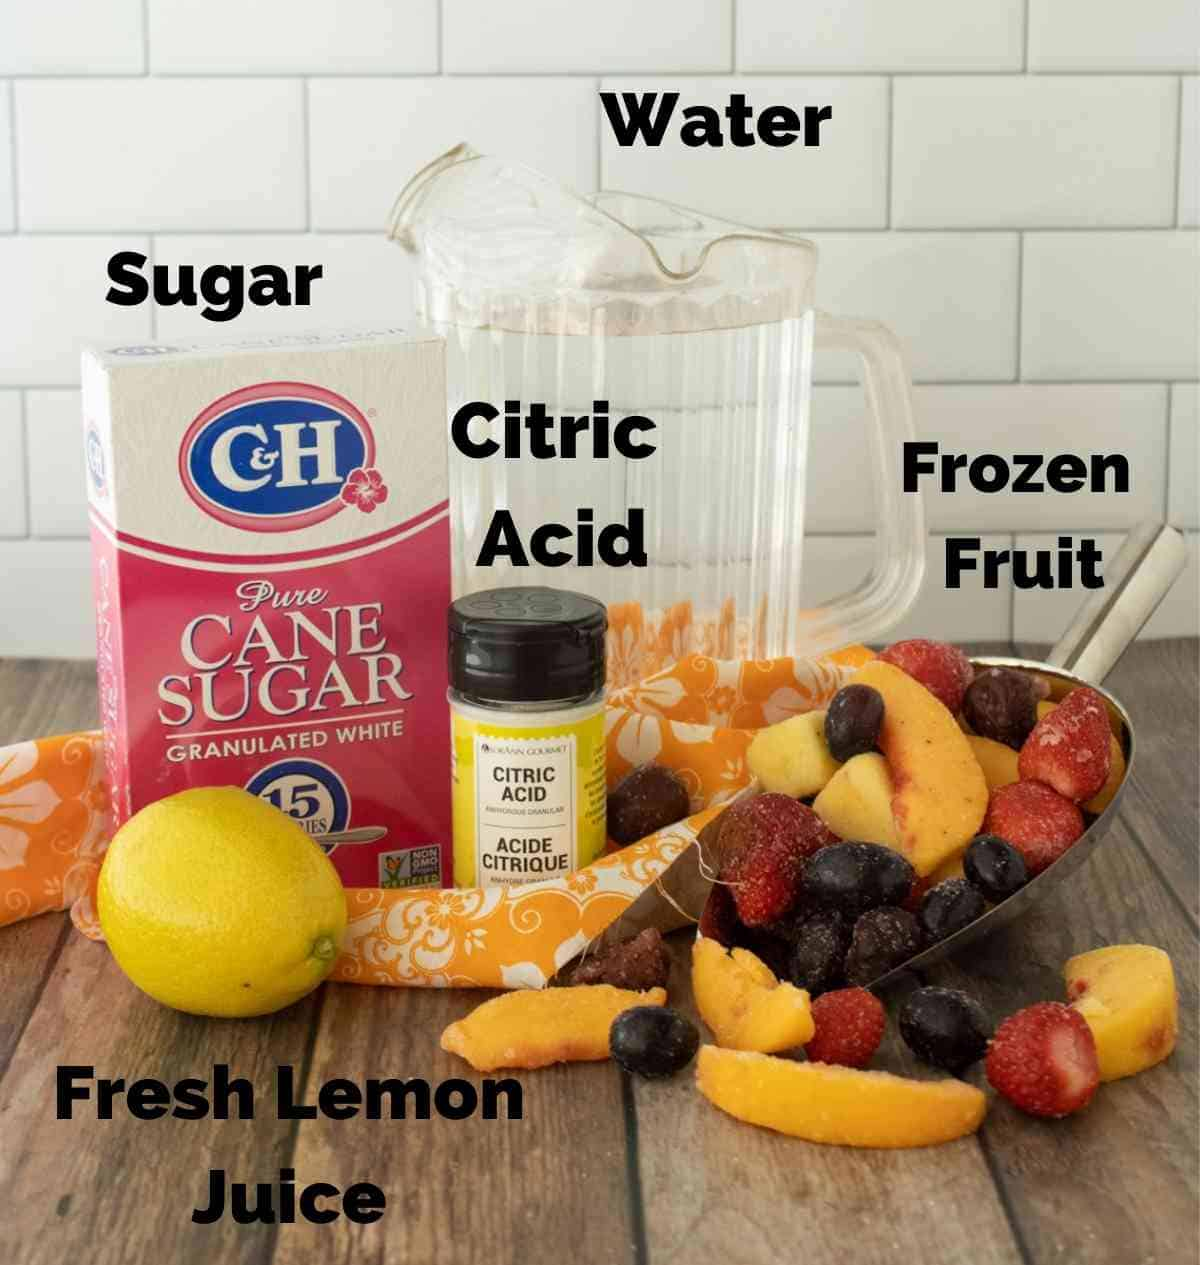 Ingredients to make this punch.